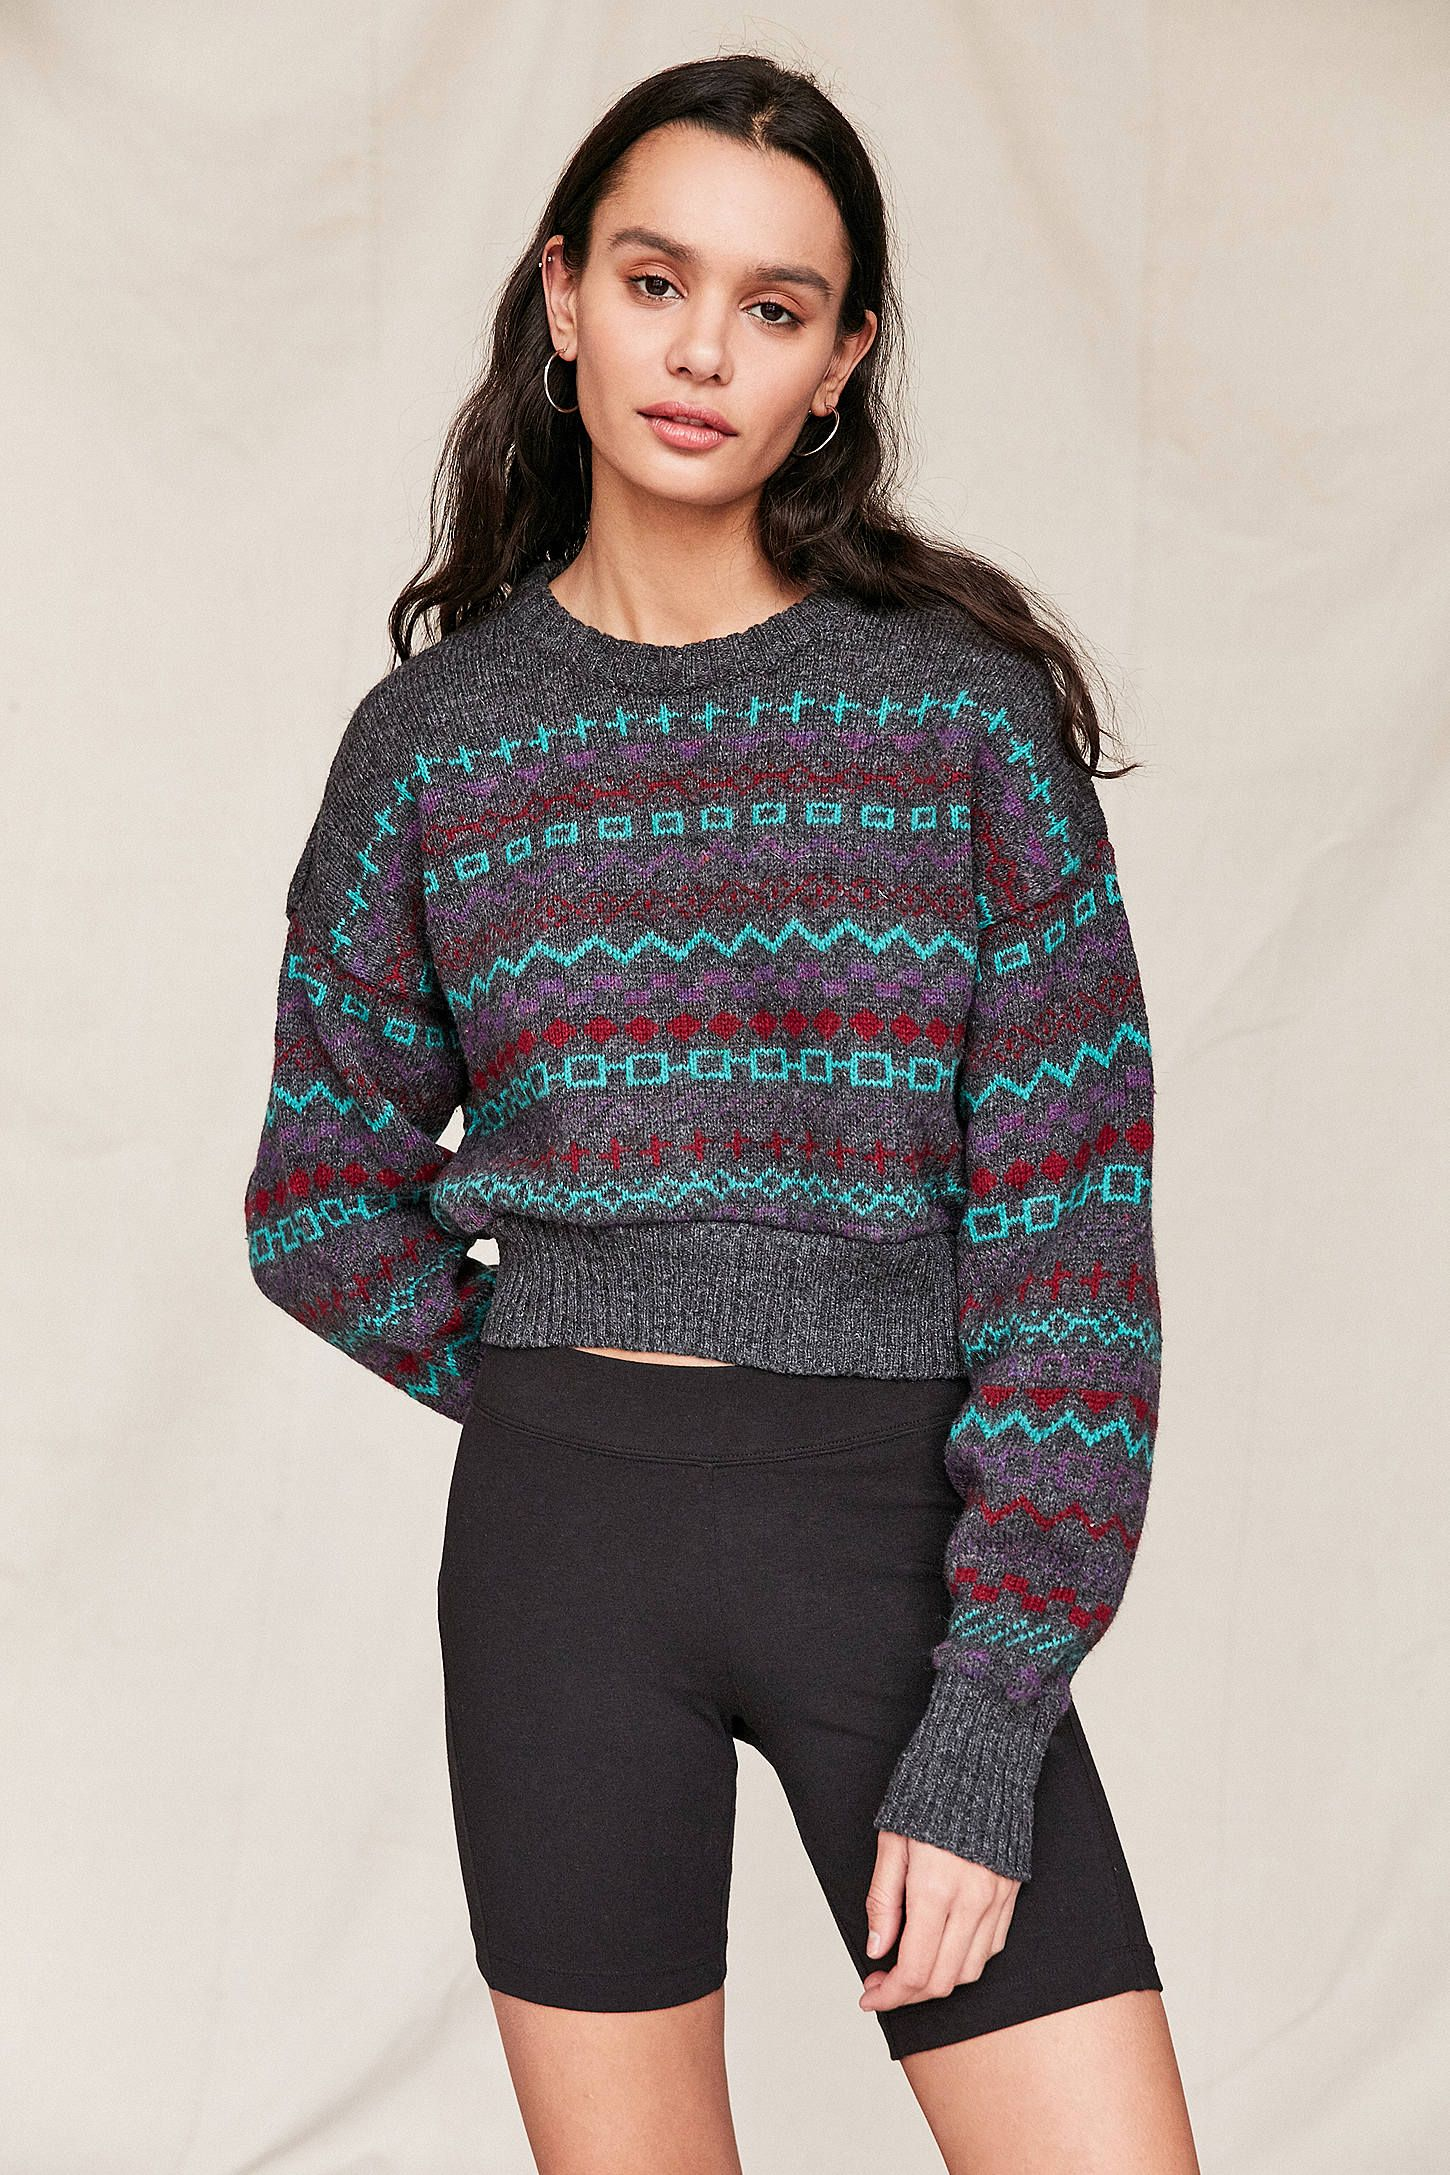 Urban Renewal Remade Cropped Fair Isle Sweater | Urban renewal ...